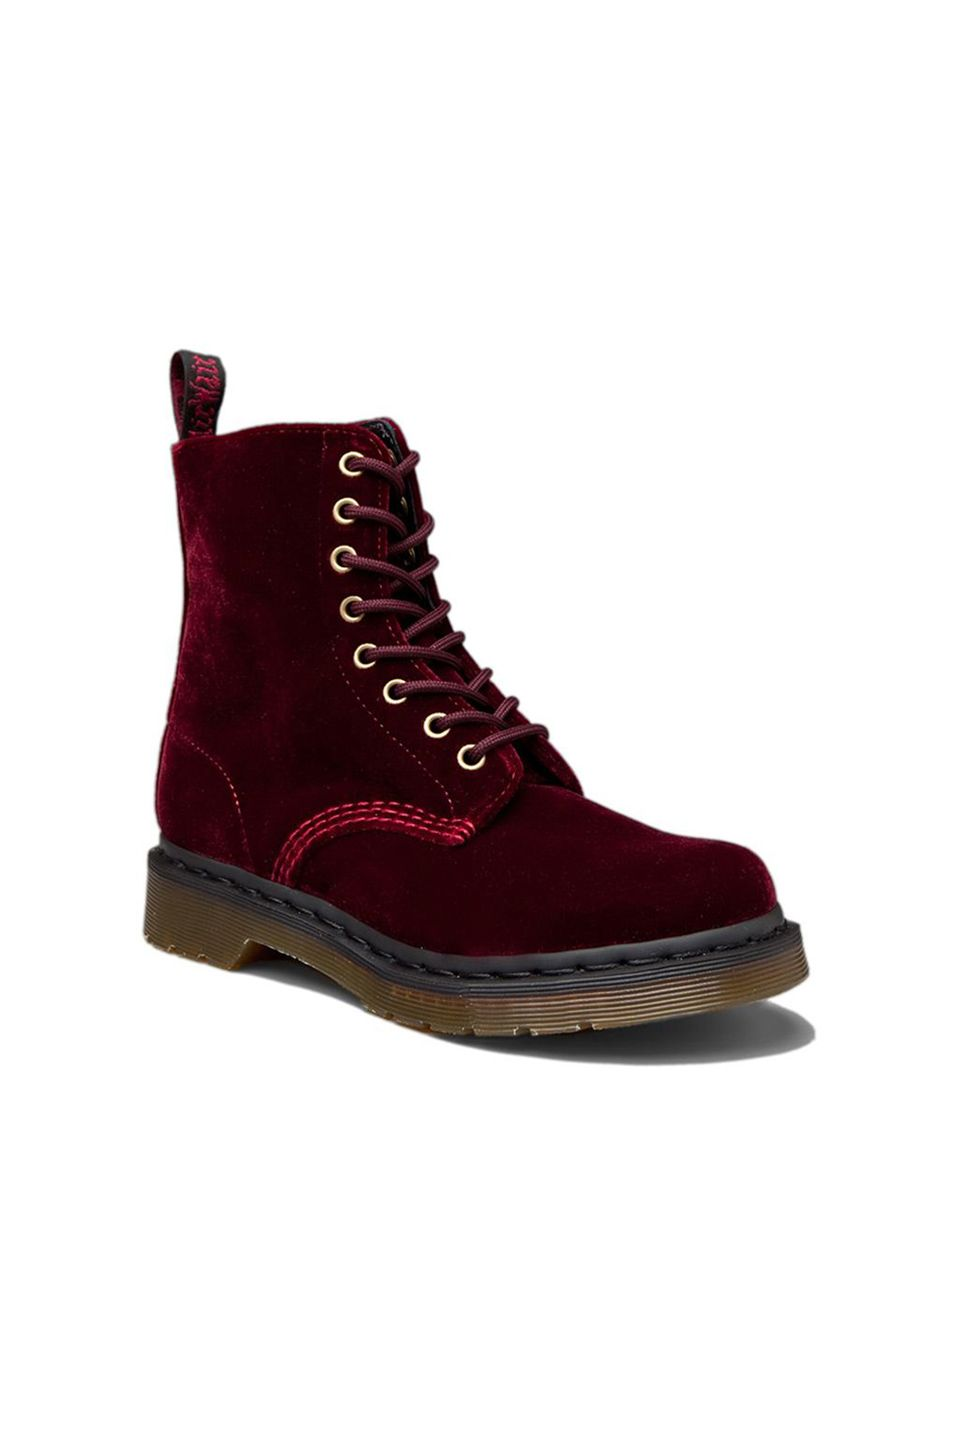 Dr. Martens Page Velvet Boot in Cherry Red (With images